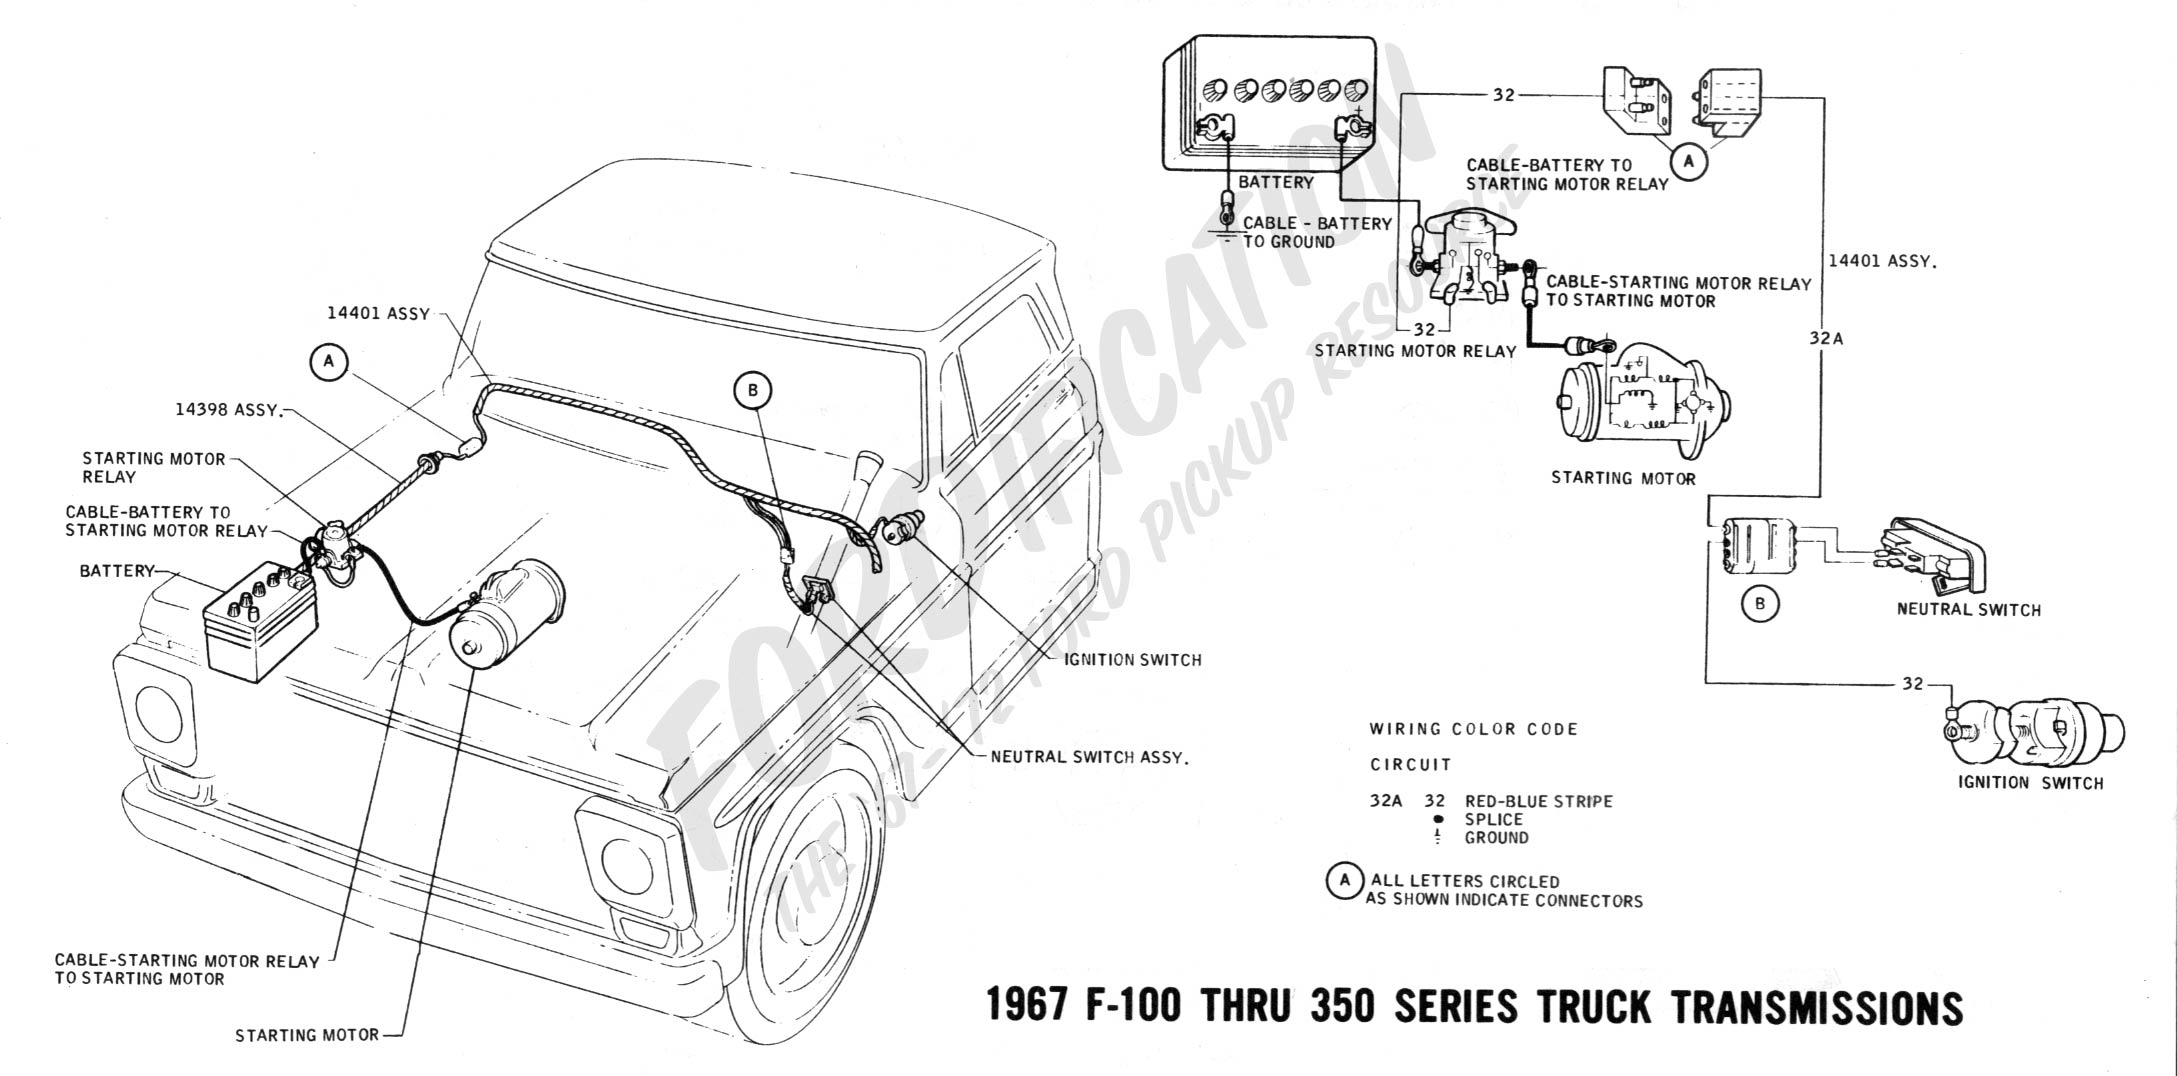 ford f250 solenoid diagram wiring diagram database rh brandgogo co 2003 ford f150 starter diagram 1997 ford f150 starter diagram